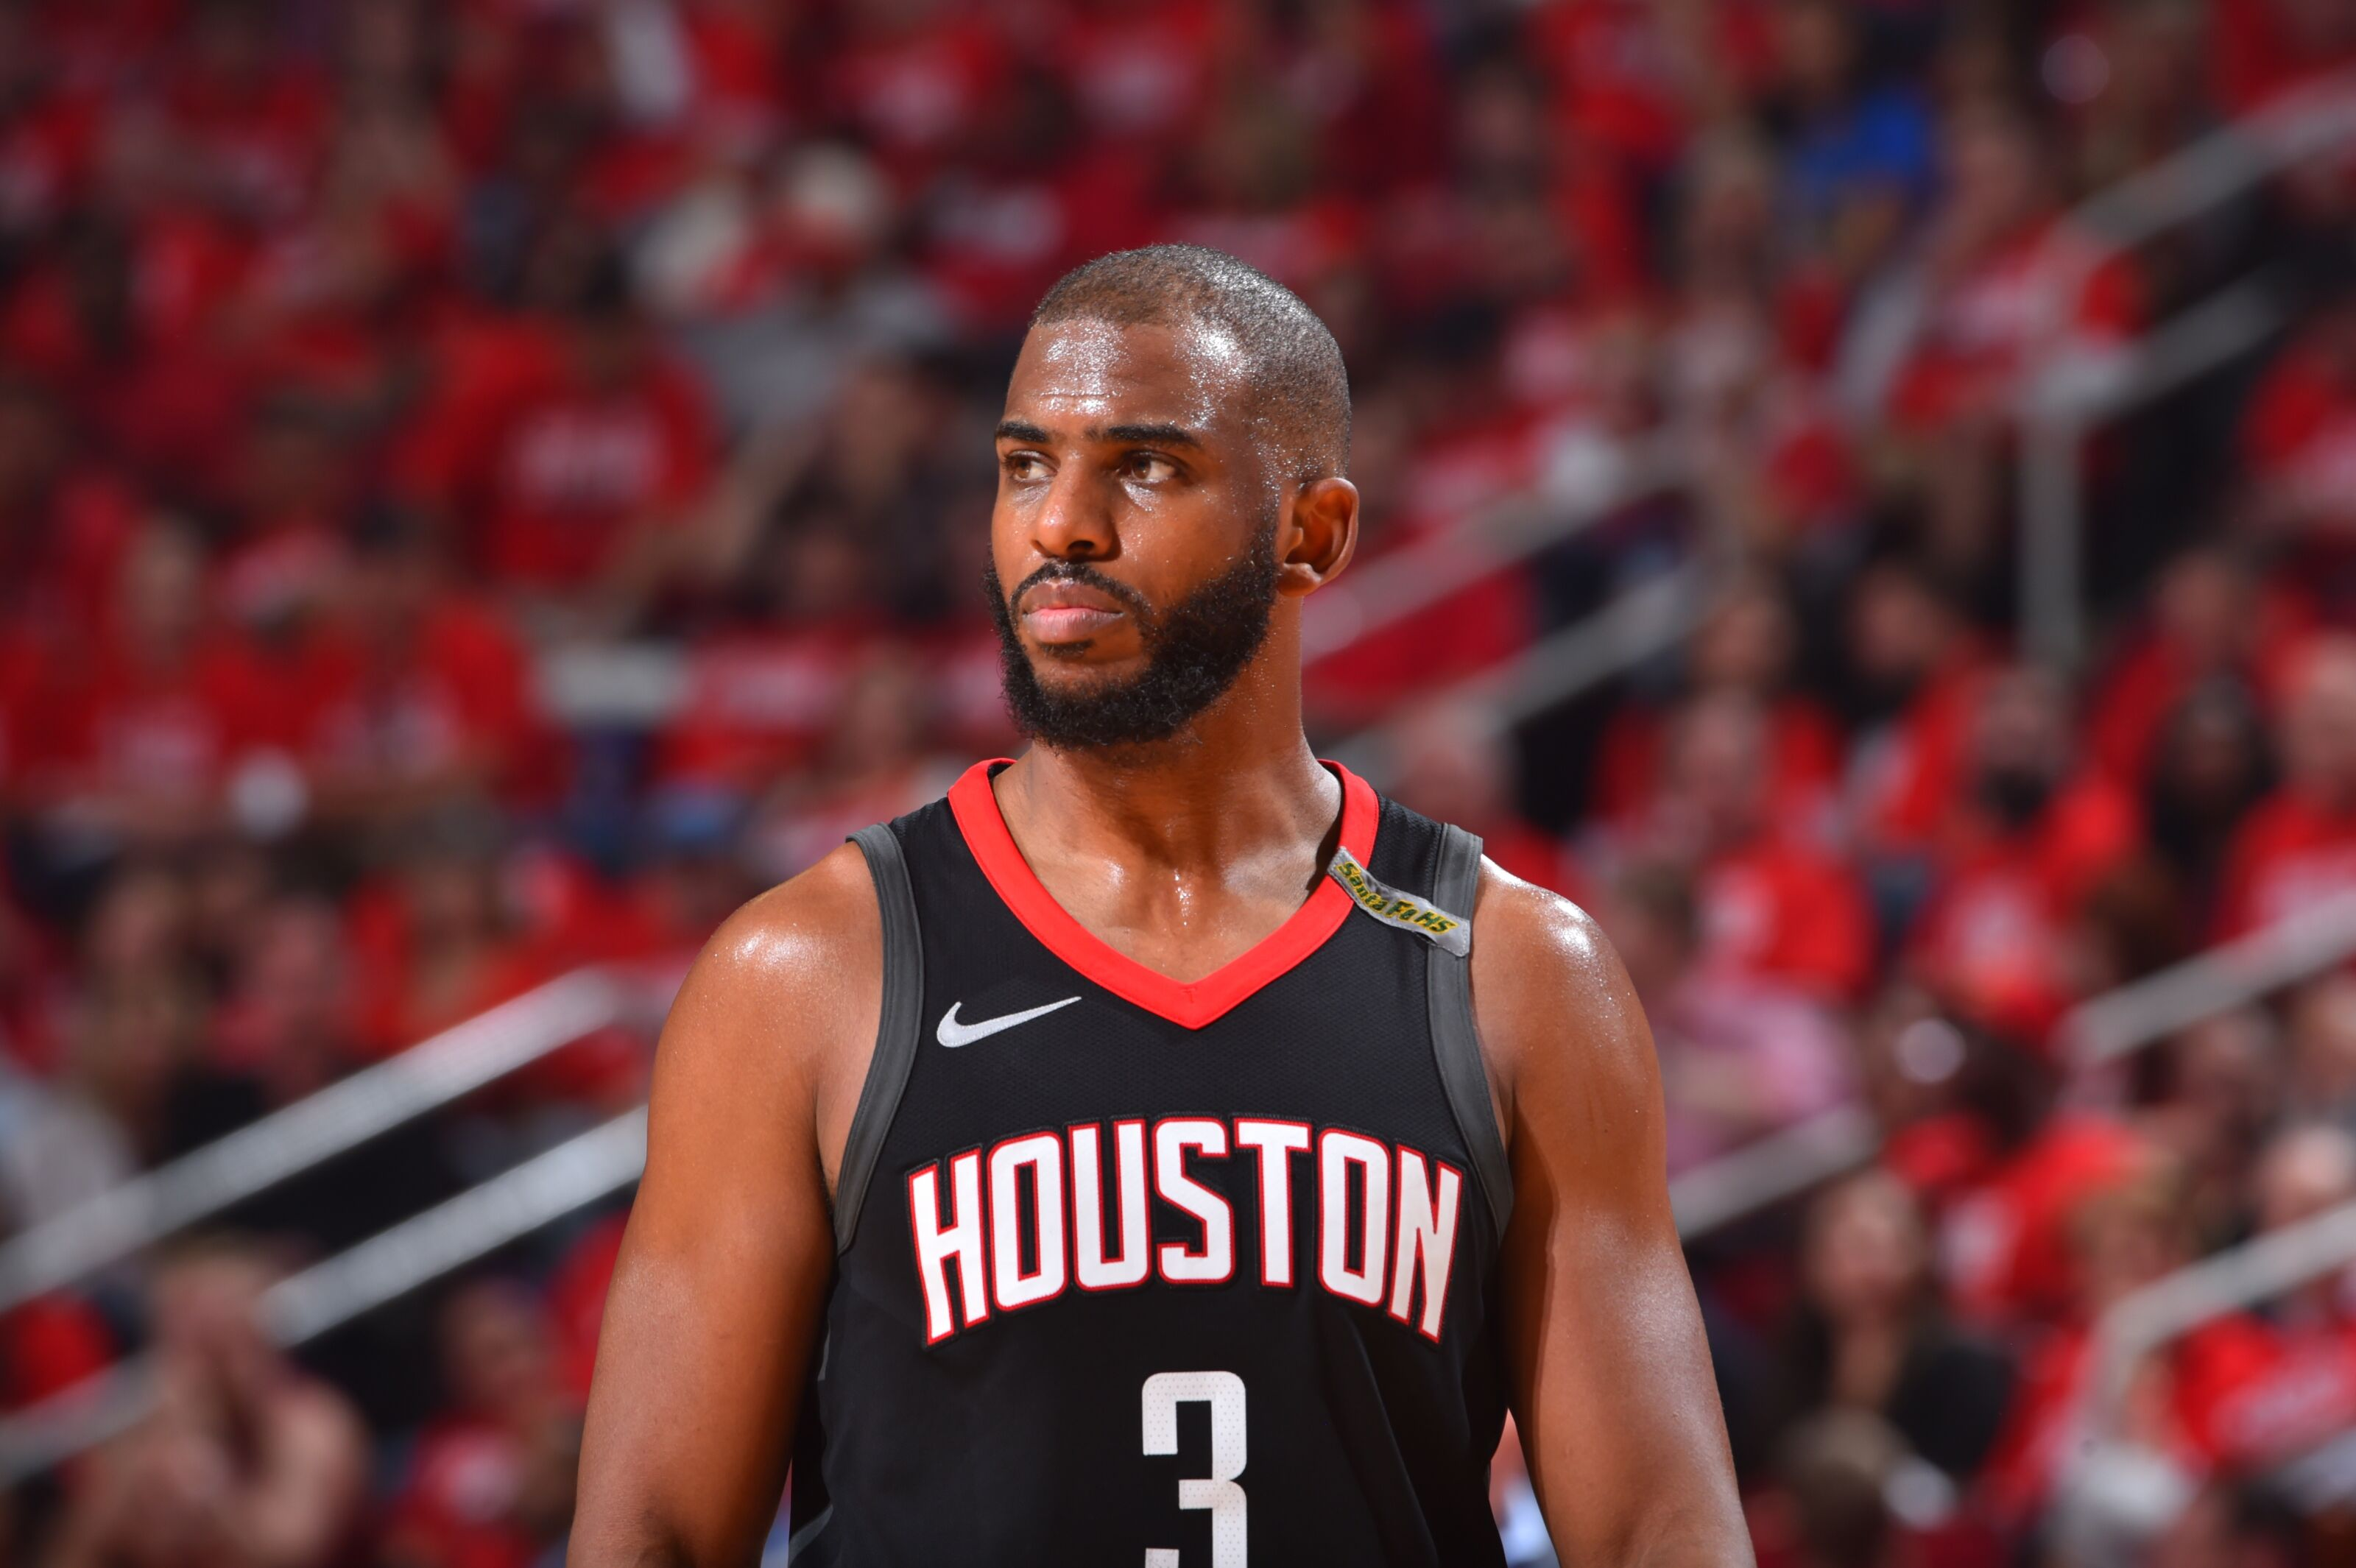 Can the Houston Rockets win Game 6 without Chris Paul?